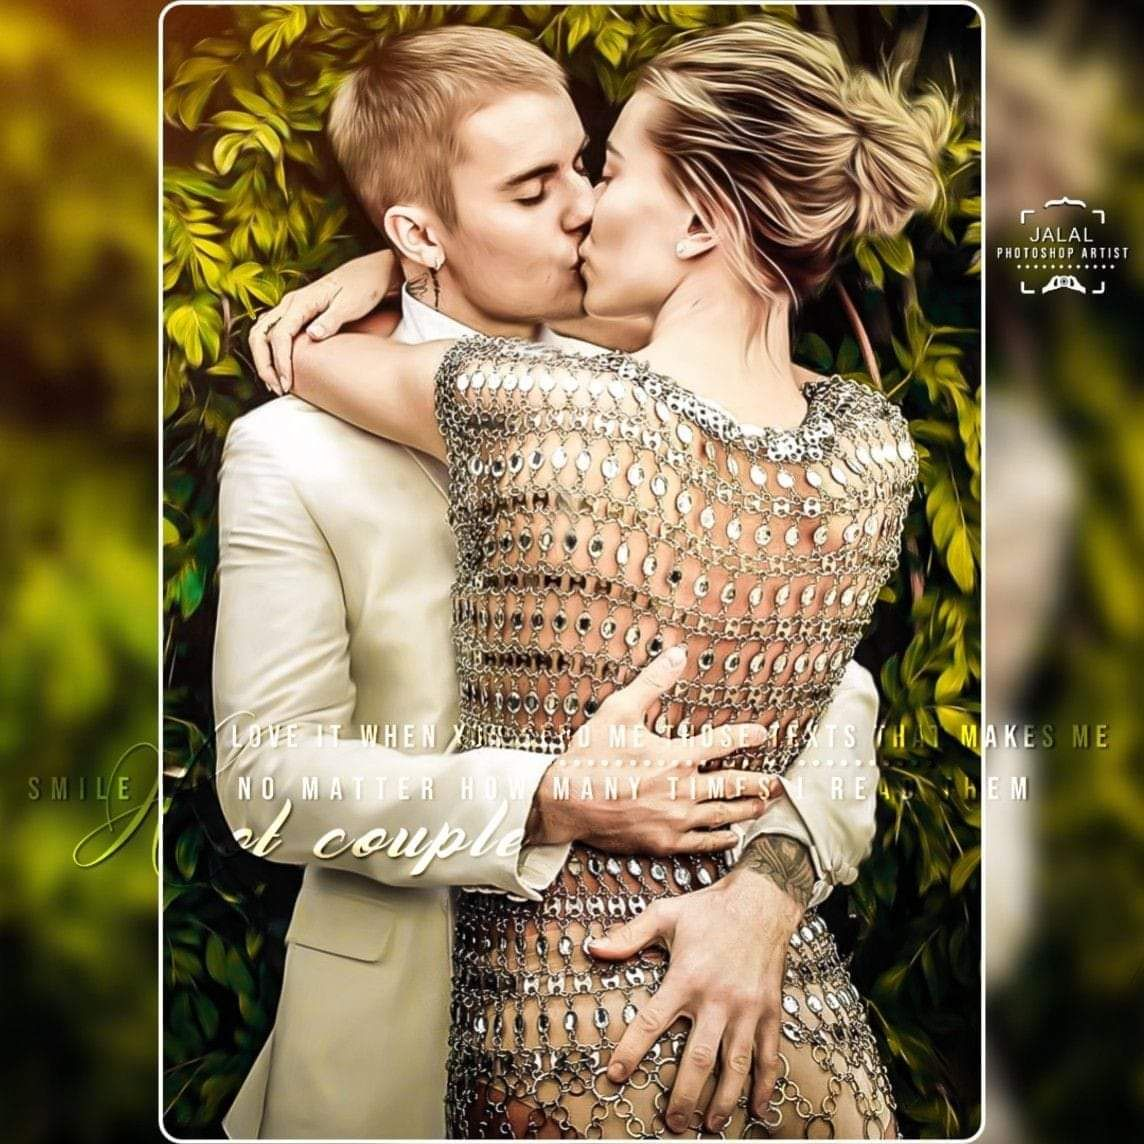 Download Couple Dp Images Hd And Couple Dp Images For Whatsapp